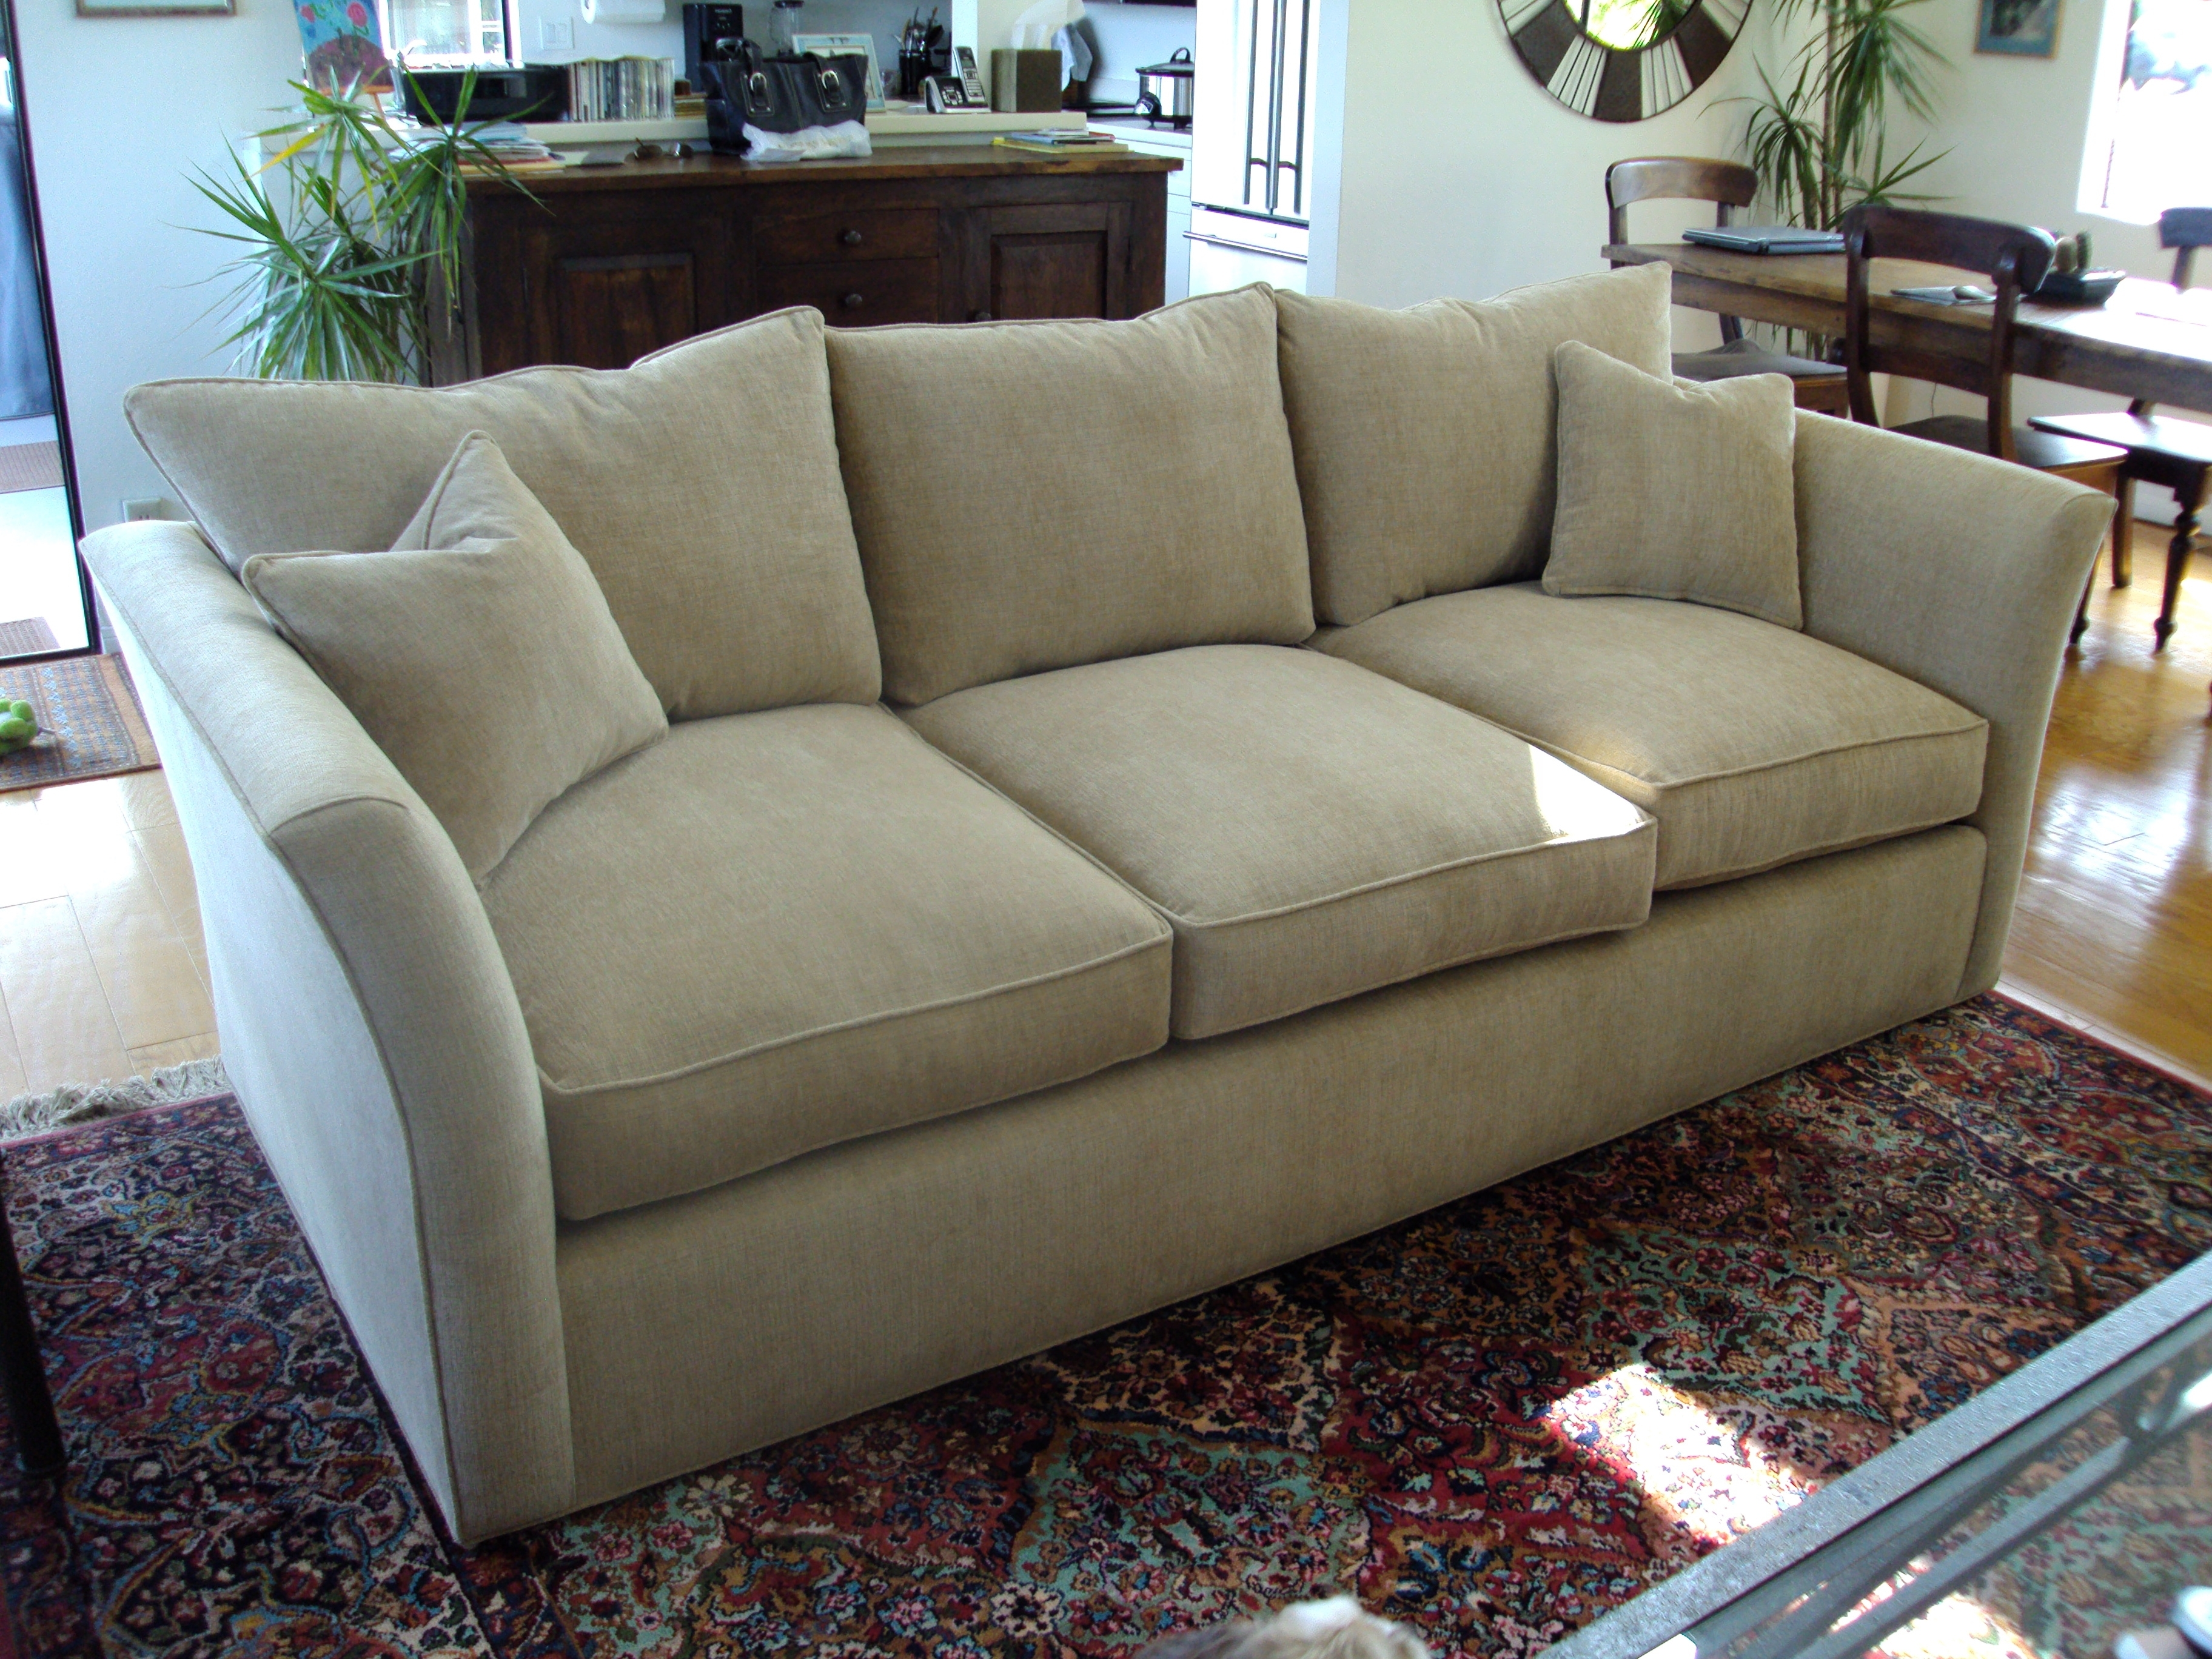 Attractive Reupholstering A Sectional Sofa 67 For Sectional Sofas For Latest Sectional Sofas In North Carolina (View 6 of 15)